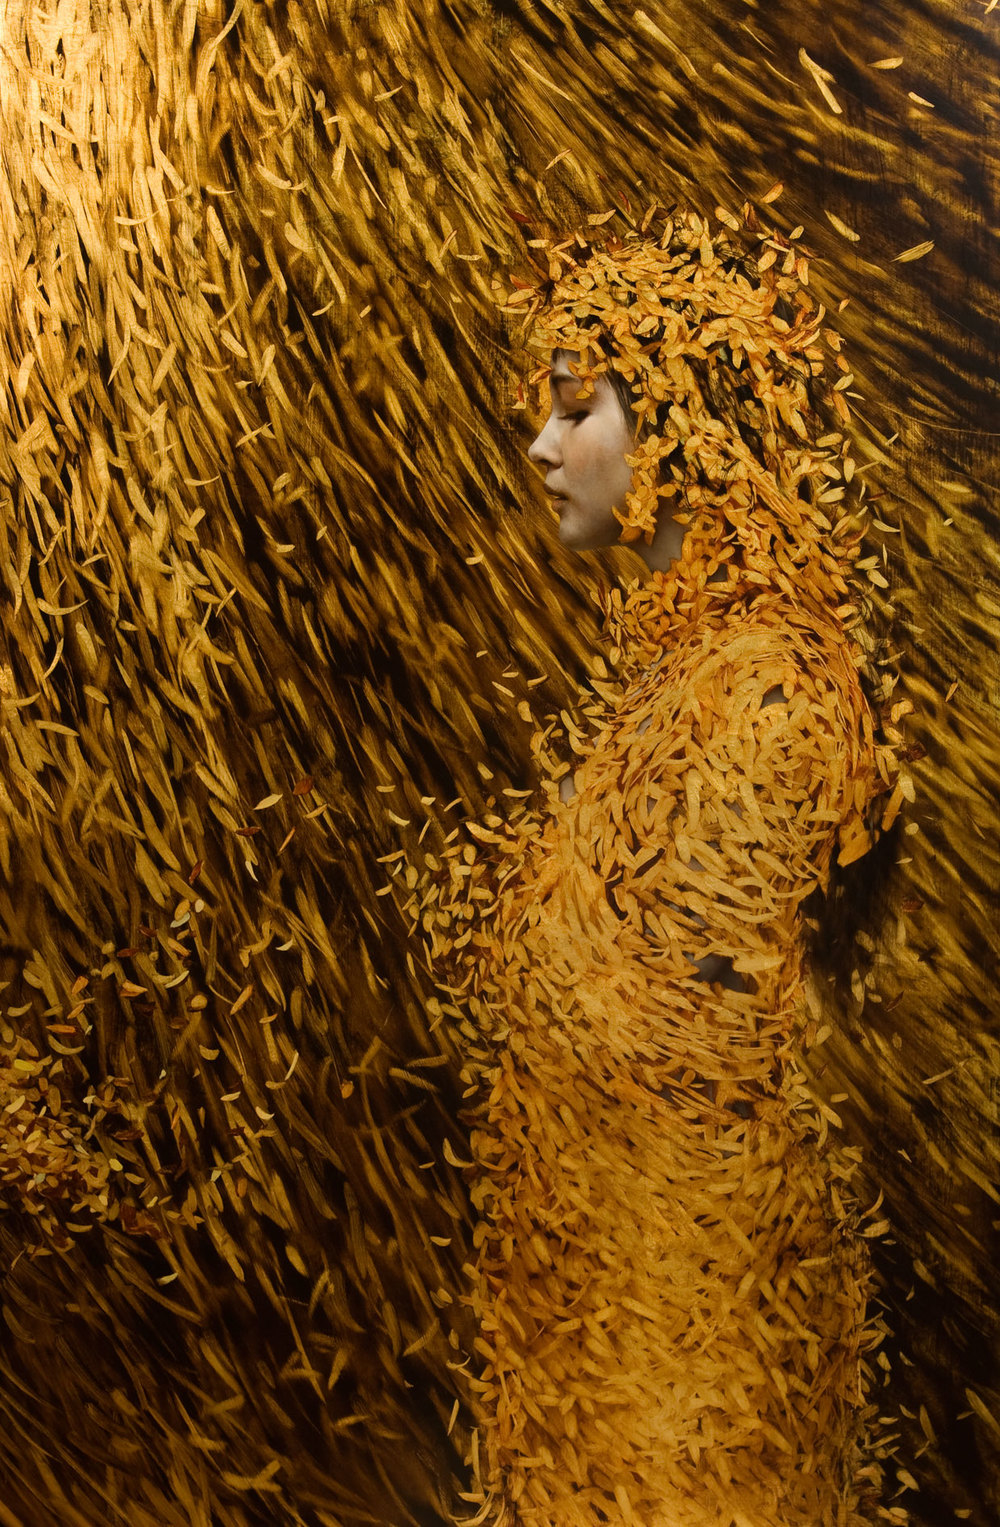 Cocoon , 2012. Oil and gold on linen. 51 x 30 inches. Private collection.